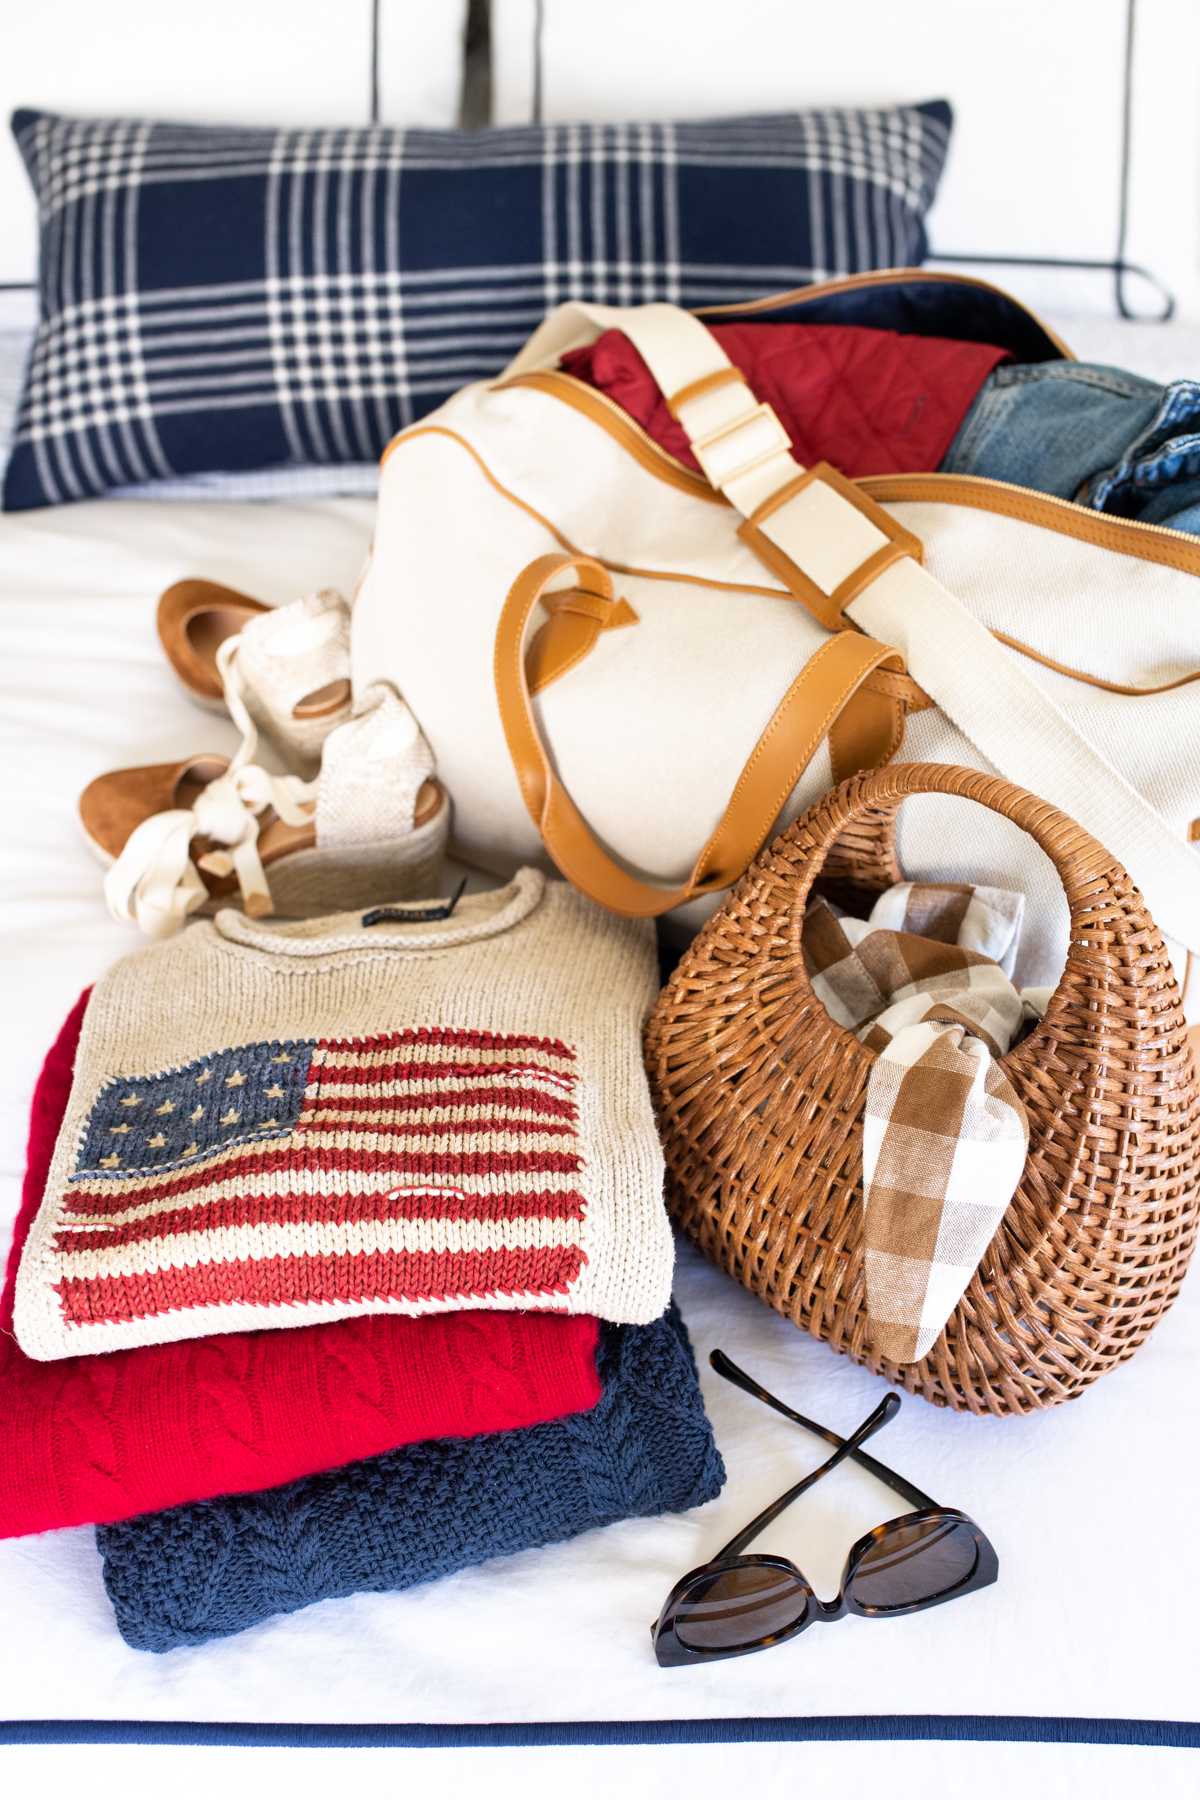 4th of July Packing List x Stacie Flinner-9